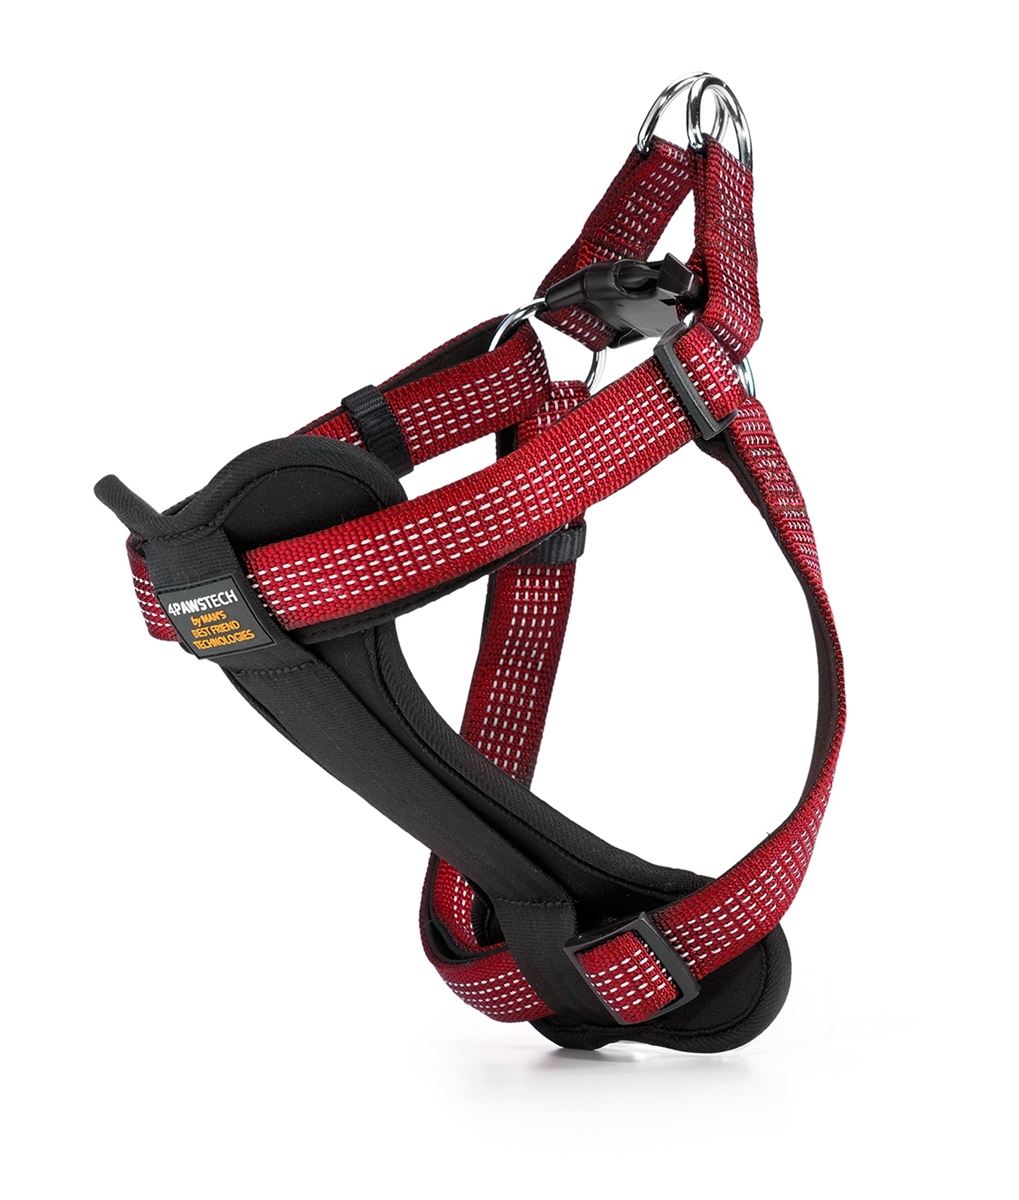 Ruby Red StarLight Reflective Safety Harness for Dogs